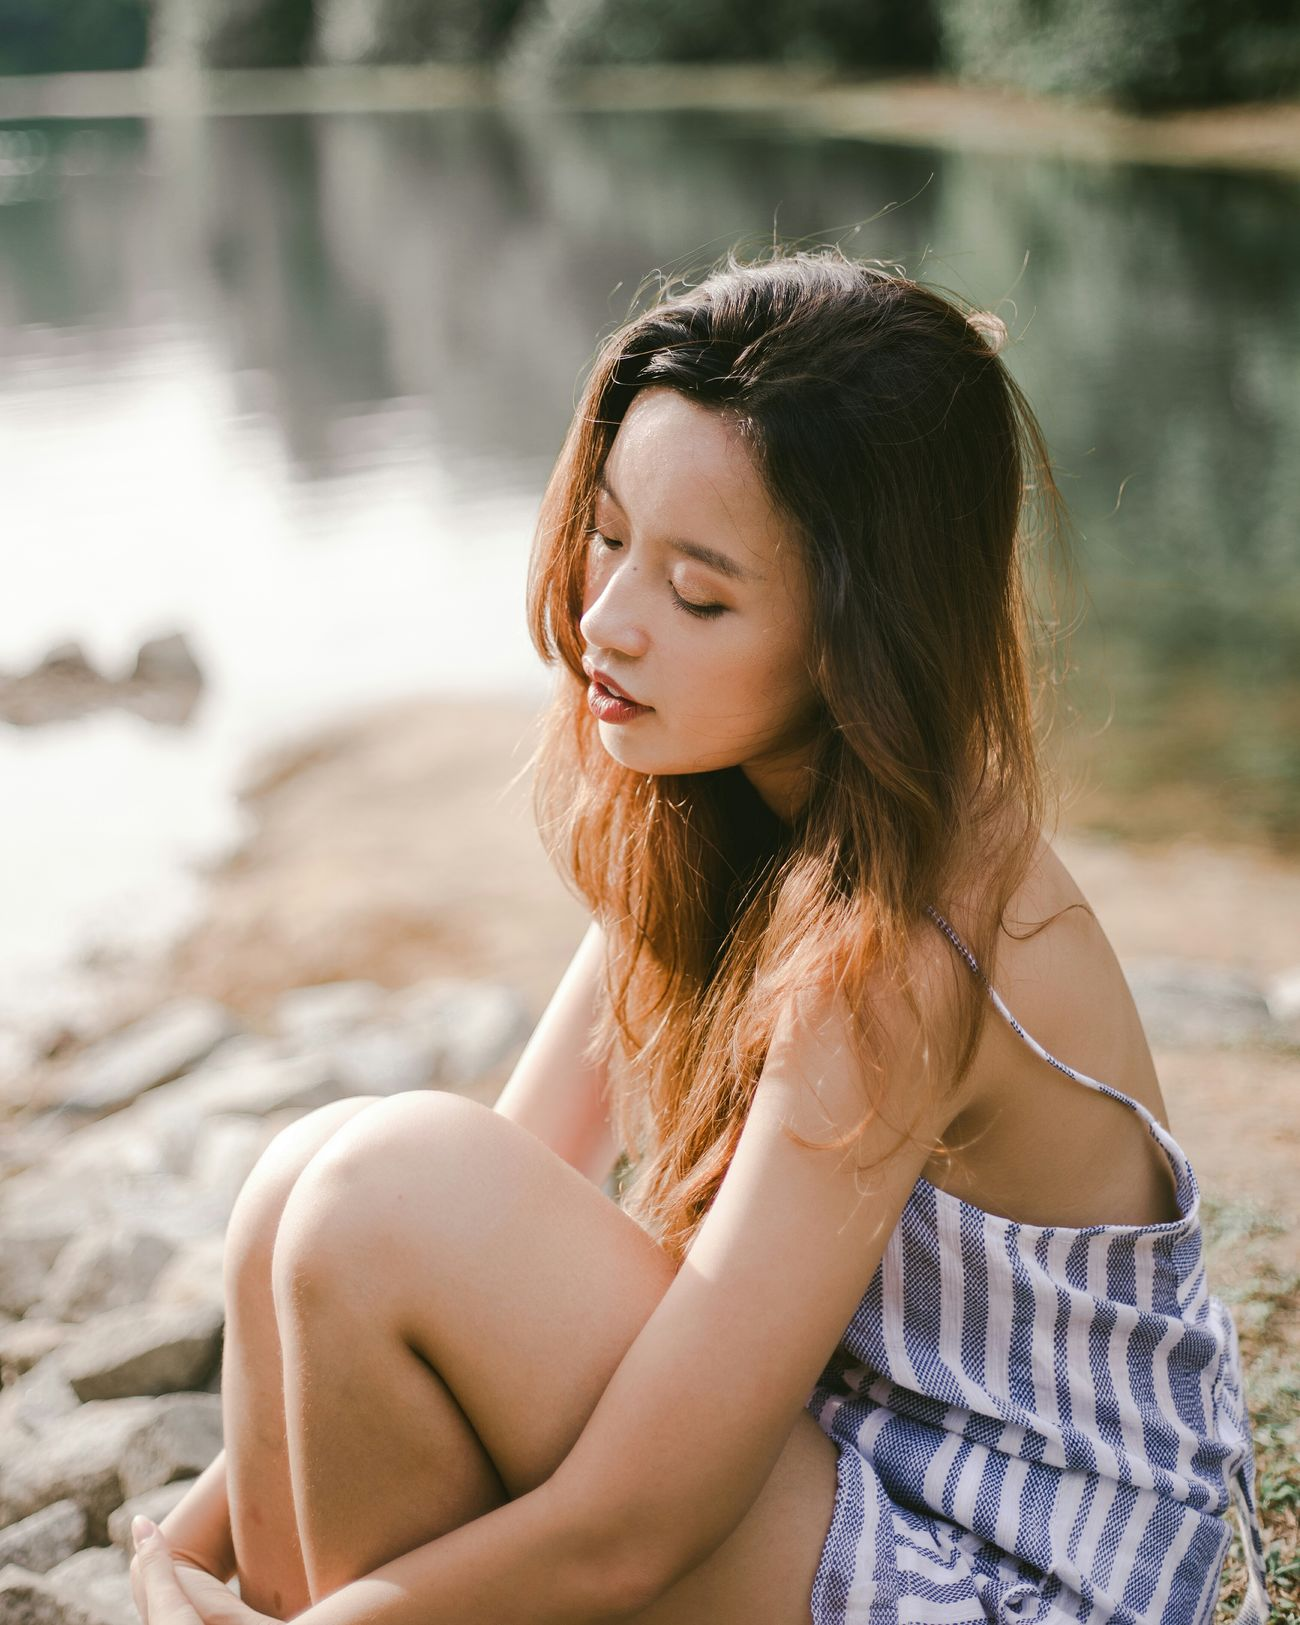 leave it to the breeze Sunlight Outdoors Beautiful People Women Of EyeEm Portrait Of A Woman Portrait Of A Girl Portrait Photography Portraits Of EyeEm Water Summer Beauty Relaxation Nature Nature_collection